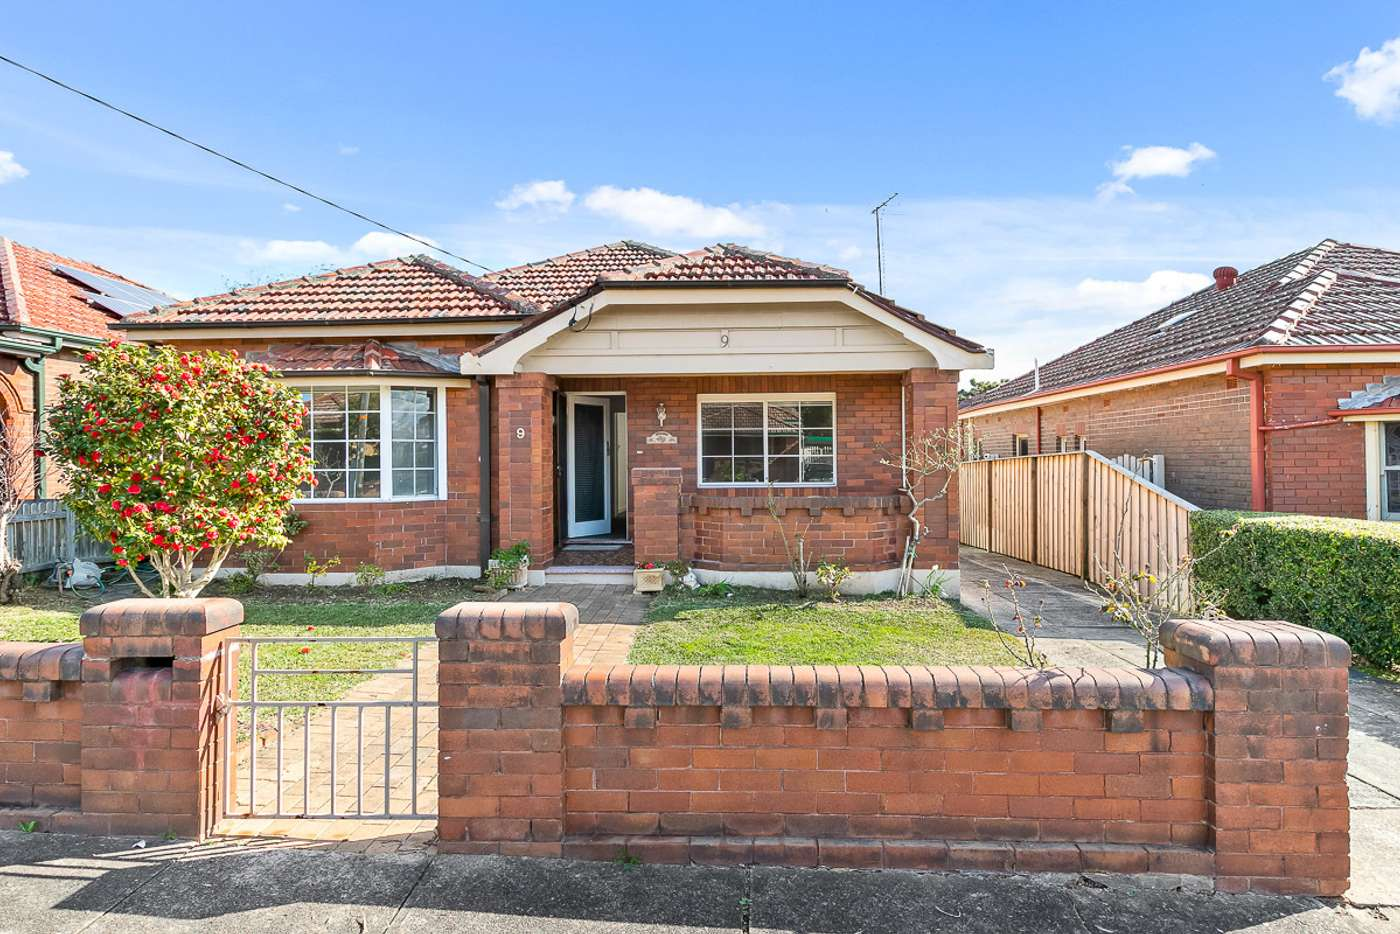 Main view of Homely house listing, 9 Bridges Avenue, Croydon NSW 2132